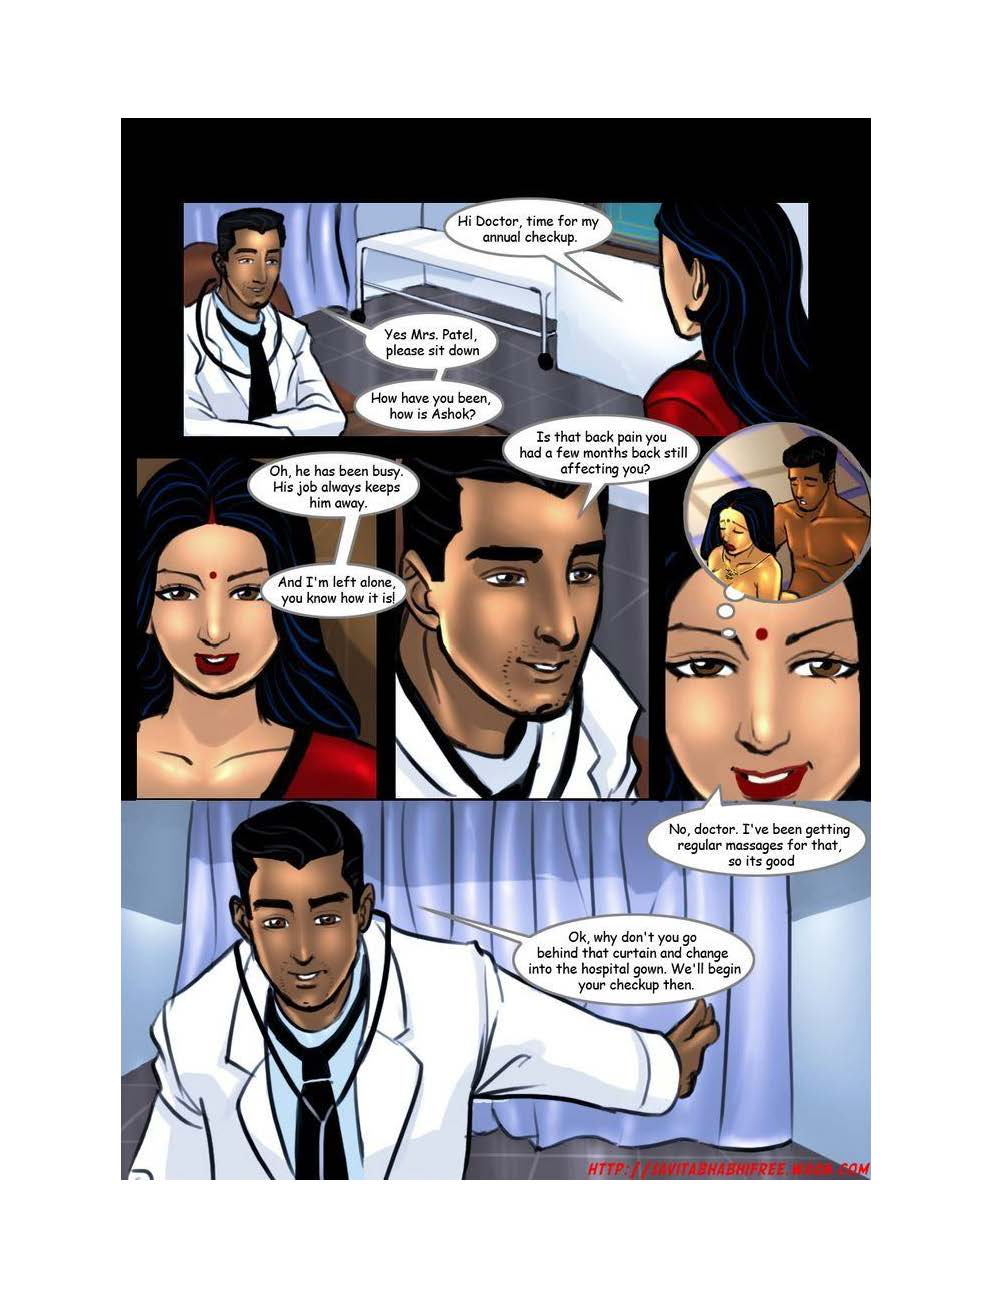 Adult Comics: Savita Bhabhi: Episode 7: Doctor Doctor